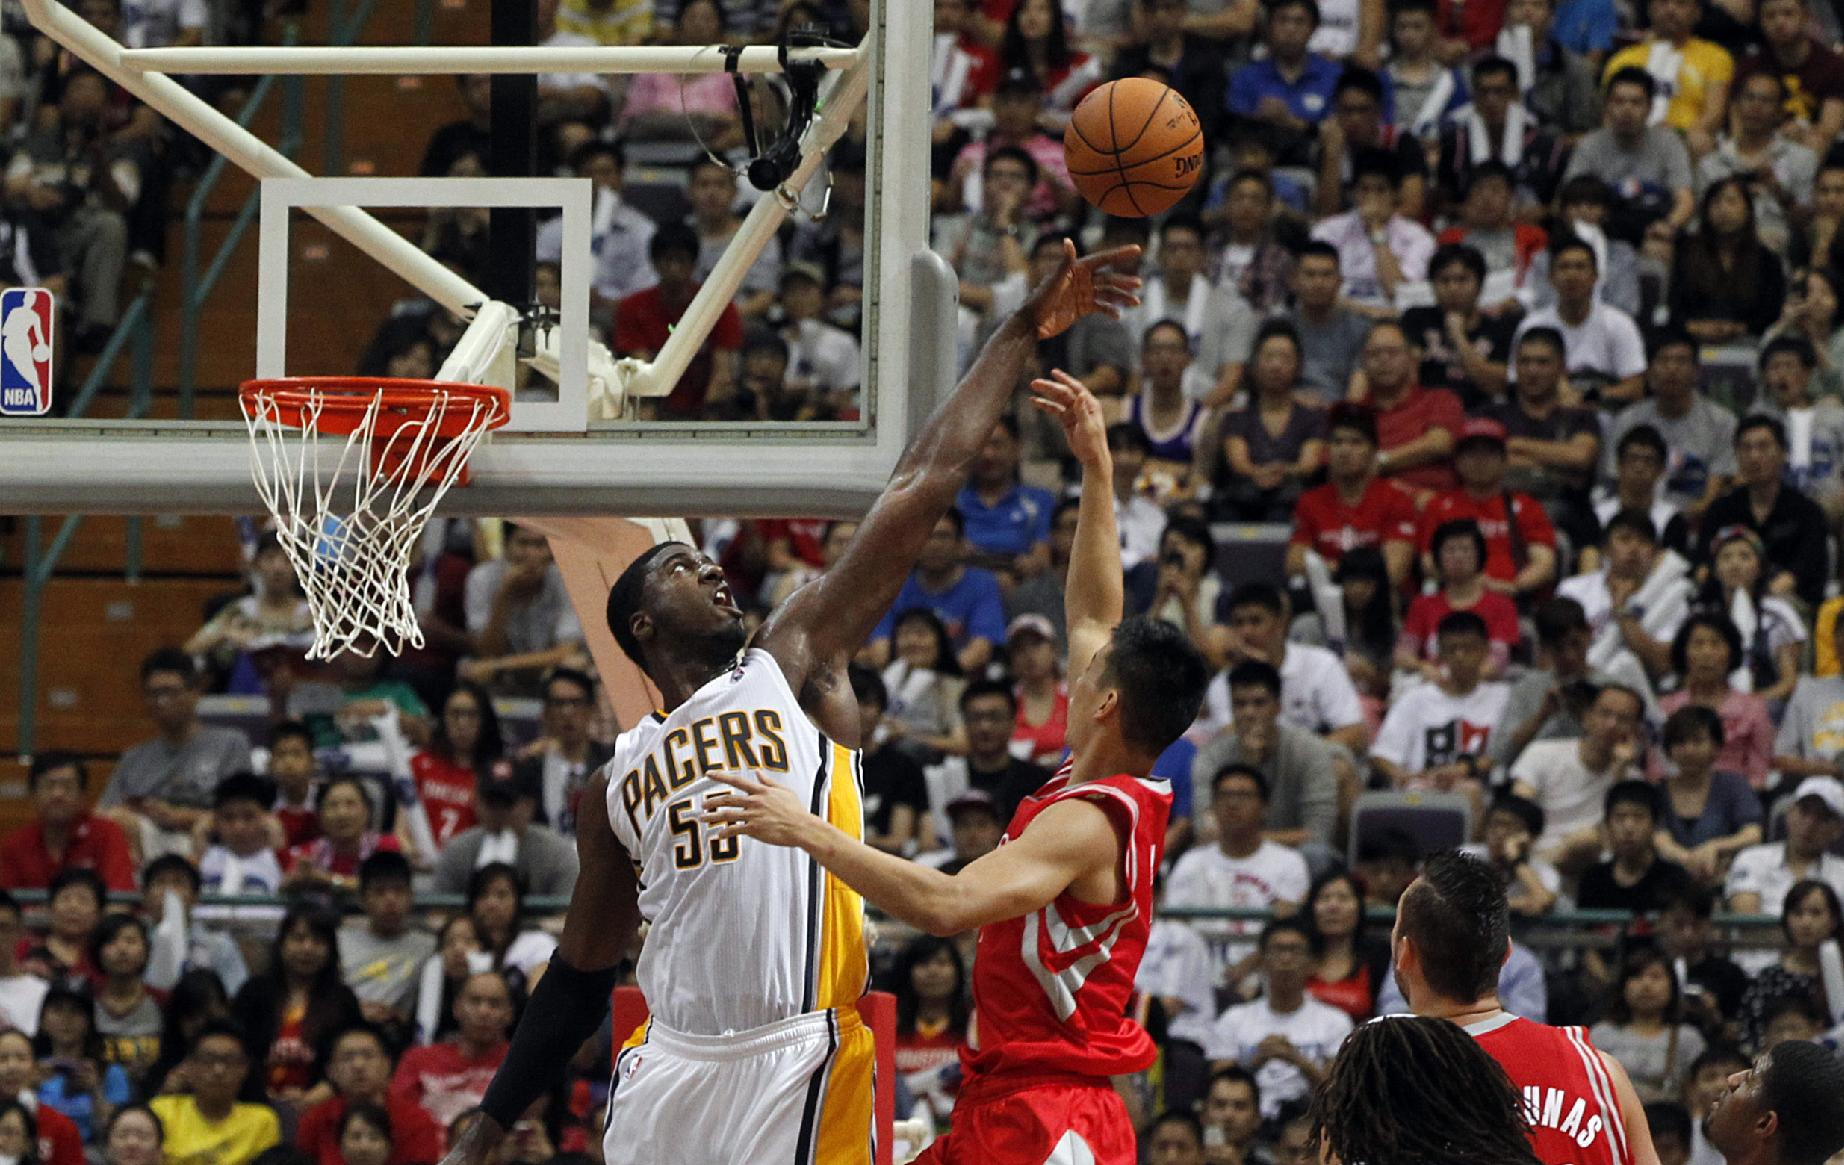 NBA Indiana Pacers Roy Hibbert (55) tries to block Houston Rockets Jeremy Lin, center, during a preseason game in Taipei, Taiwan, Sunday, Oct. 13, 2013. The Rockets beat the Pacers 107-98